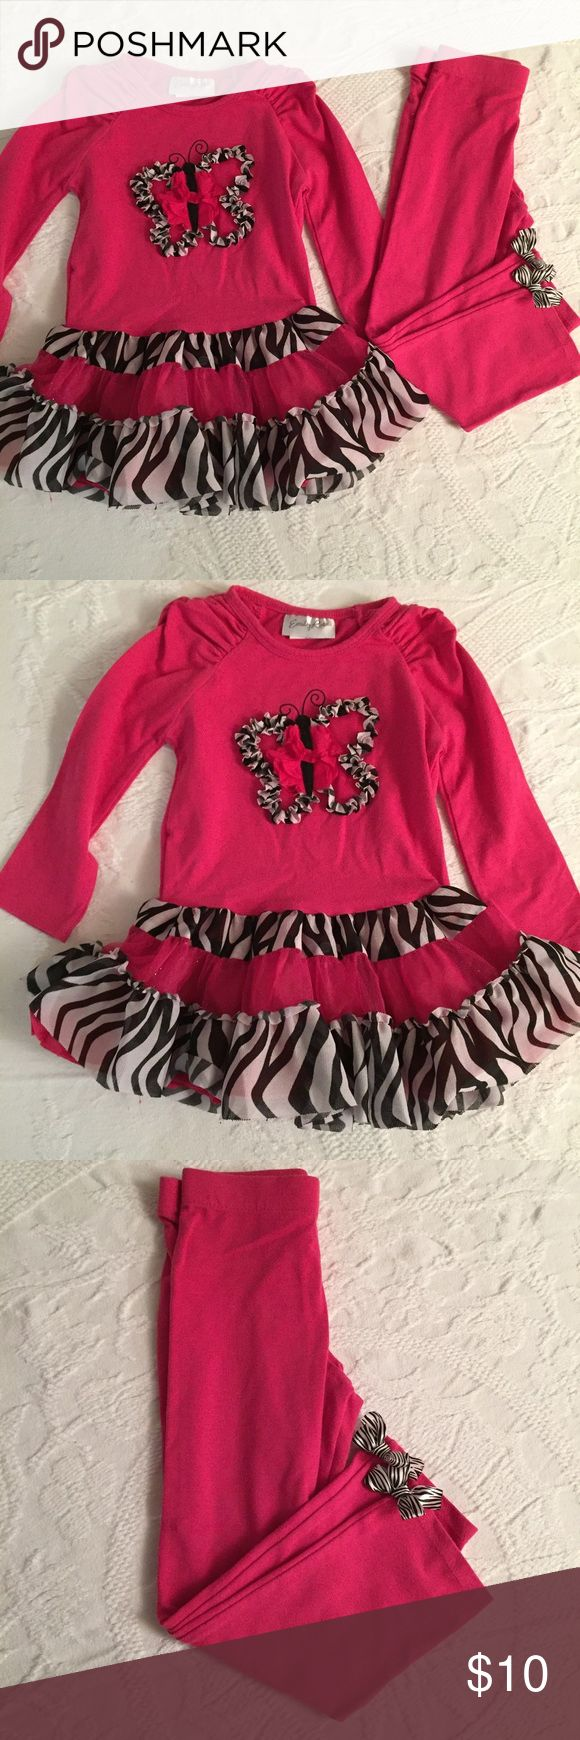 Adorable Emily rose outfit!  🦋 Size 3T. Super cute designer outfit with ruffle and bow details! In perfect condition! emily rose Matching Sets